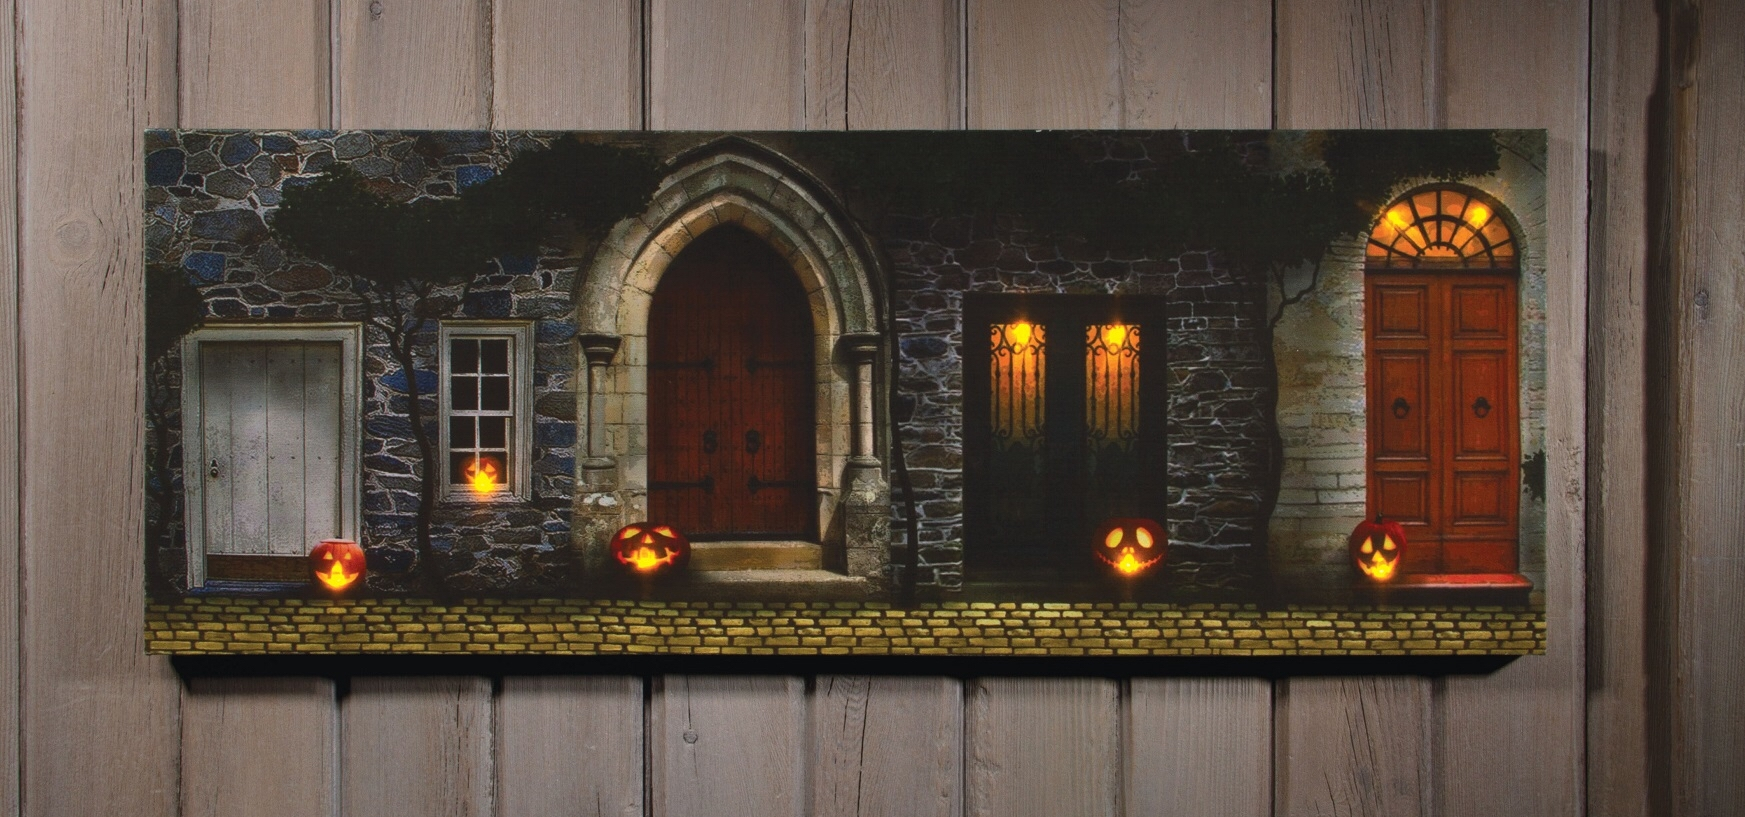 Image From Http://ep.yimg/ay/yhst 16633577946644/radiance With Regard To 2017 Halloween Led Canvas Wall Art (Gallery 3 of 15)